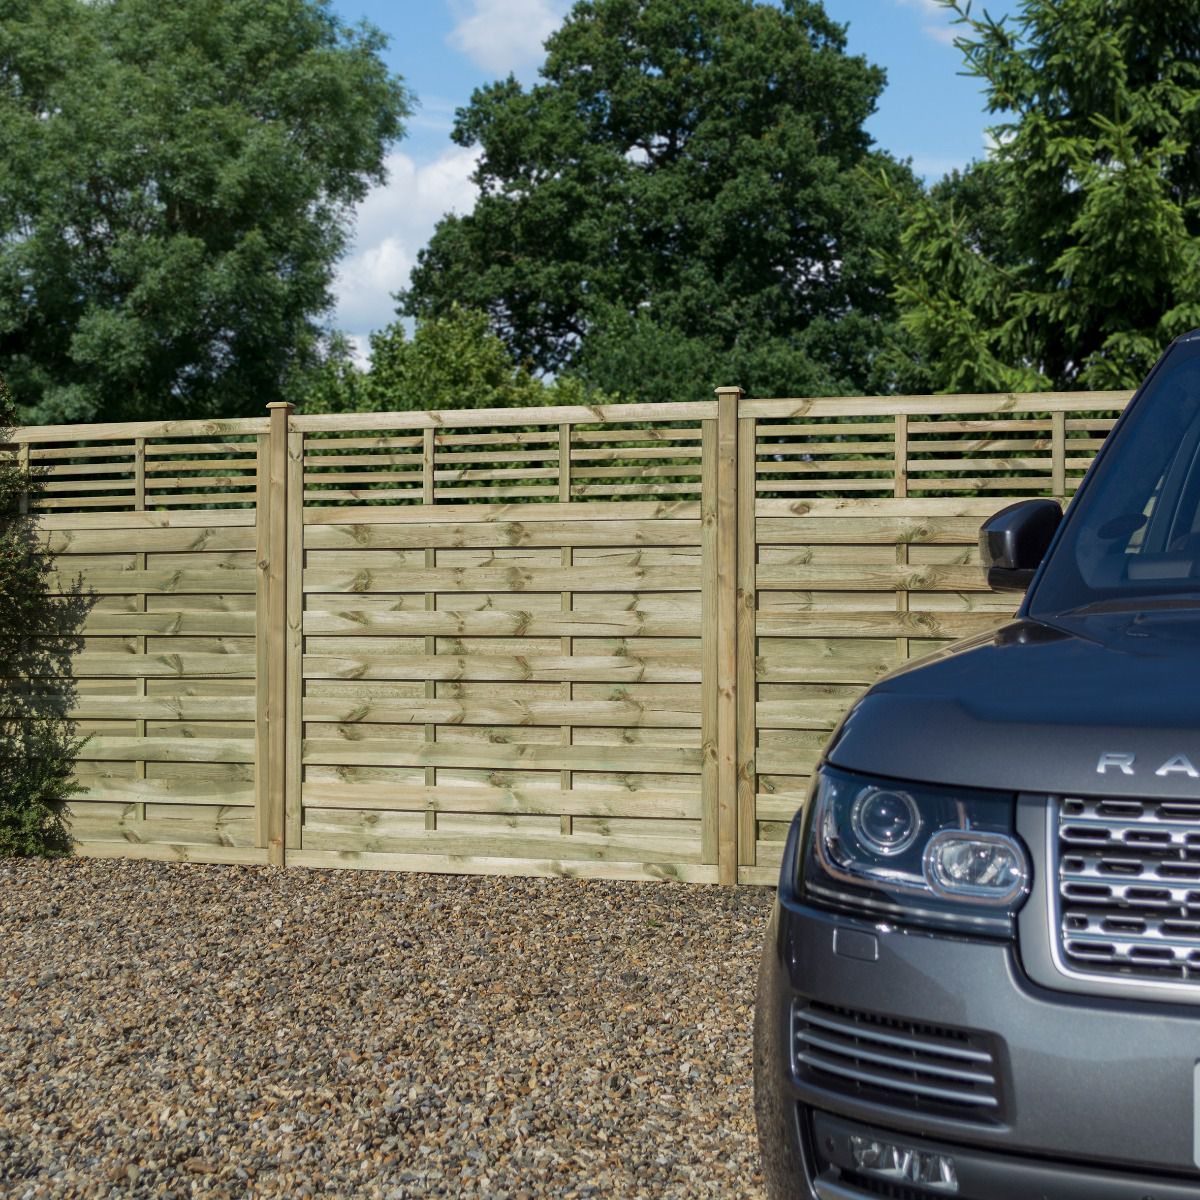 Langham Pressure Treated Wooden Fence Panel with Slatted Top